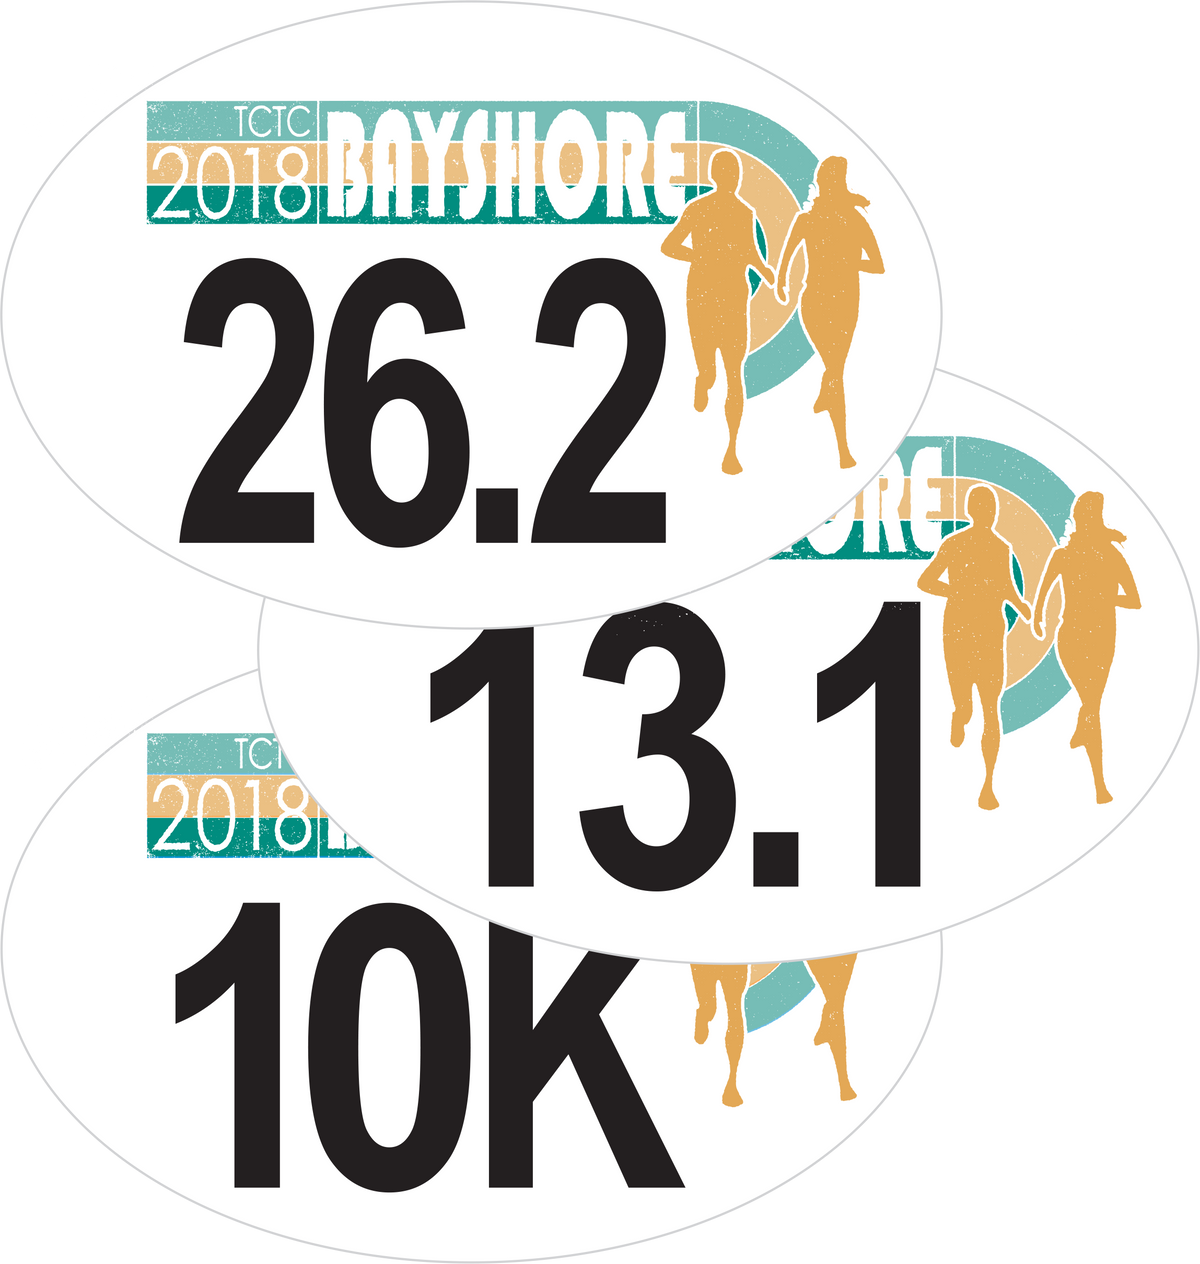 Bayshore 2018 Car Decal Sticker (10K & 13.1)